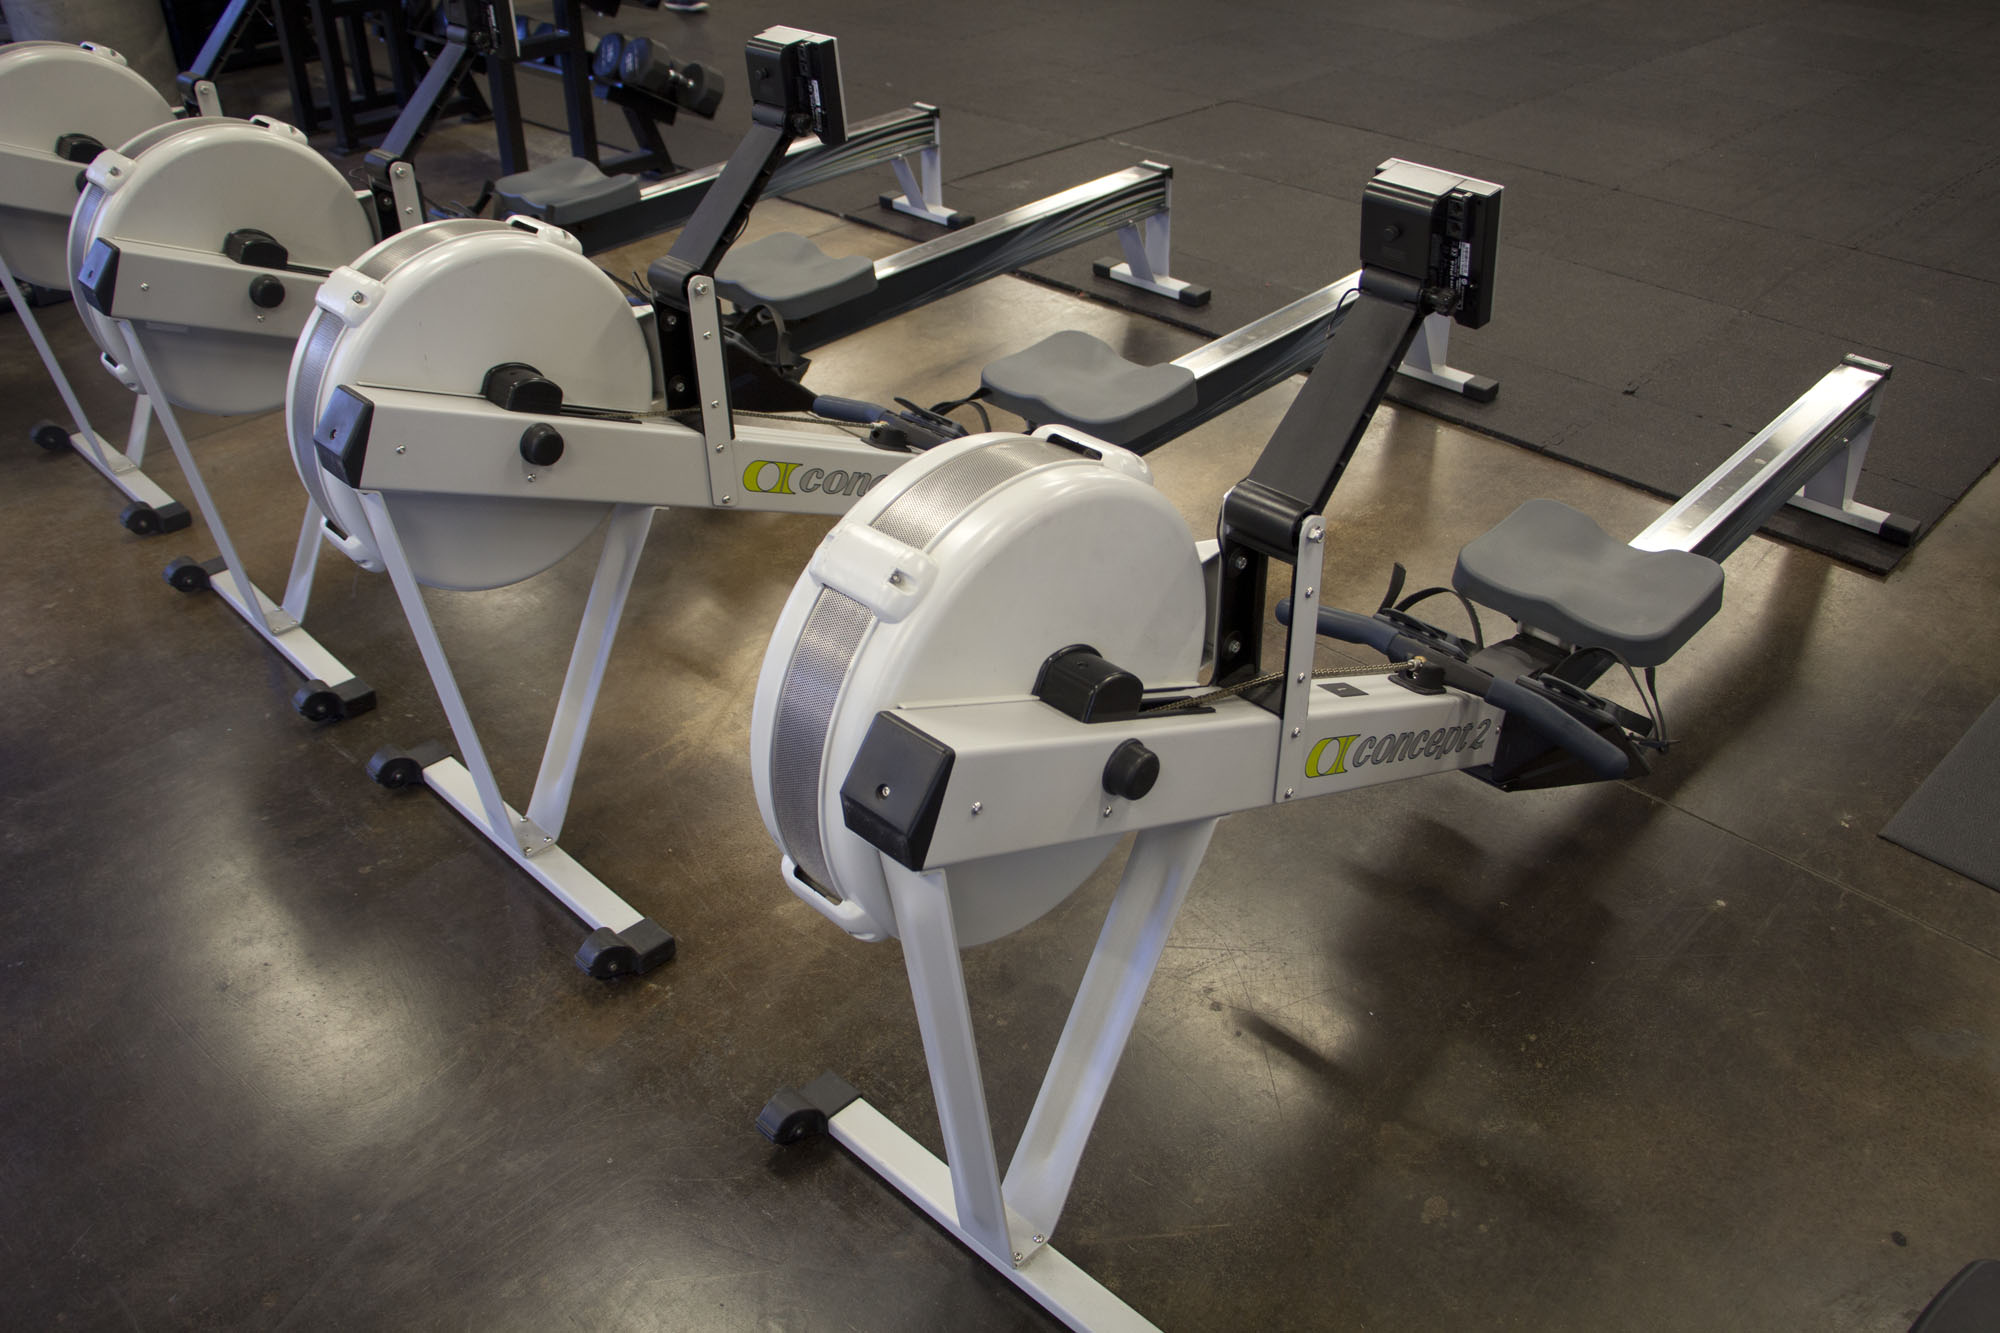 Rowing Machines - Tired of the treadmill? Get your cardio in on a rowing machine, while building muscle at the same time.